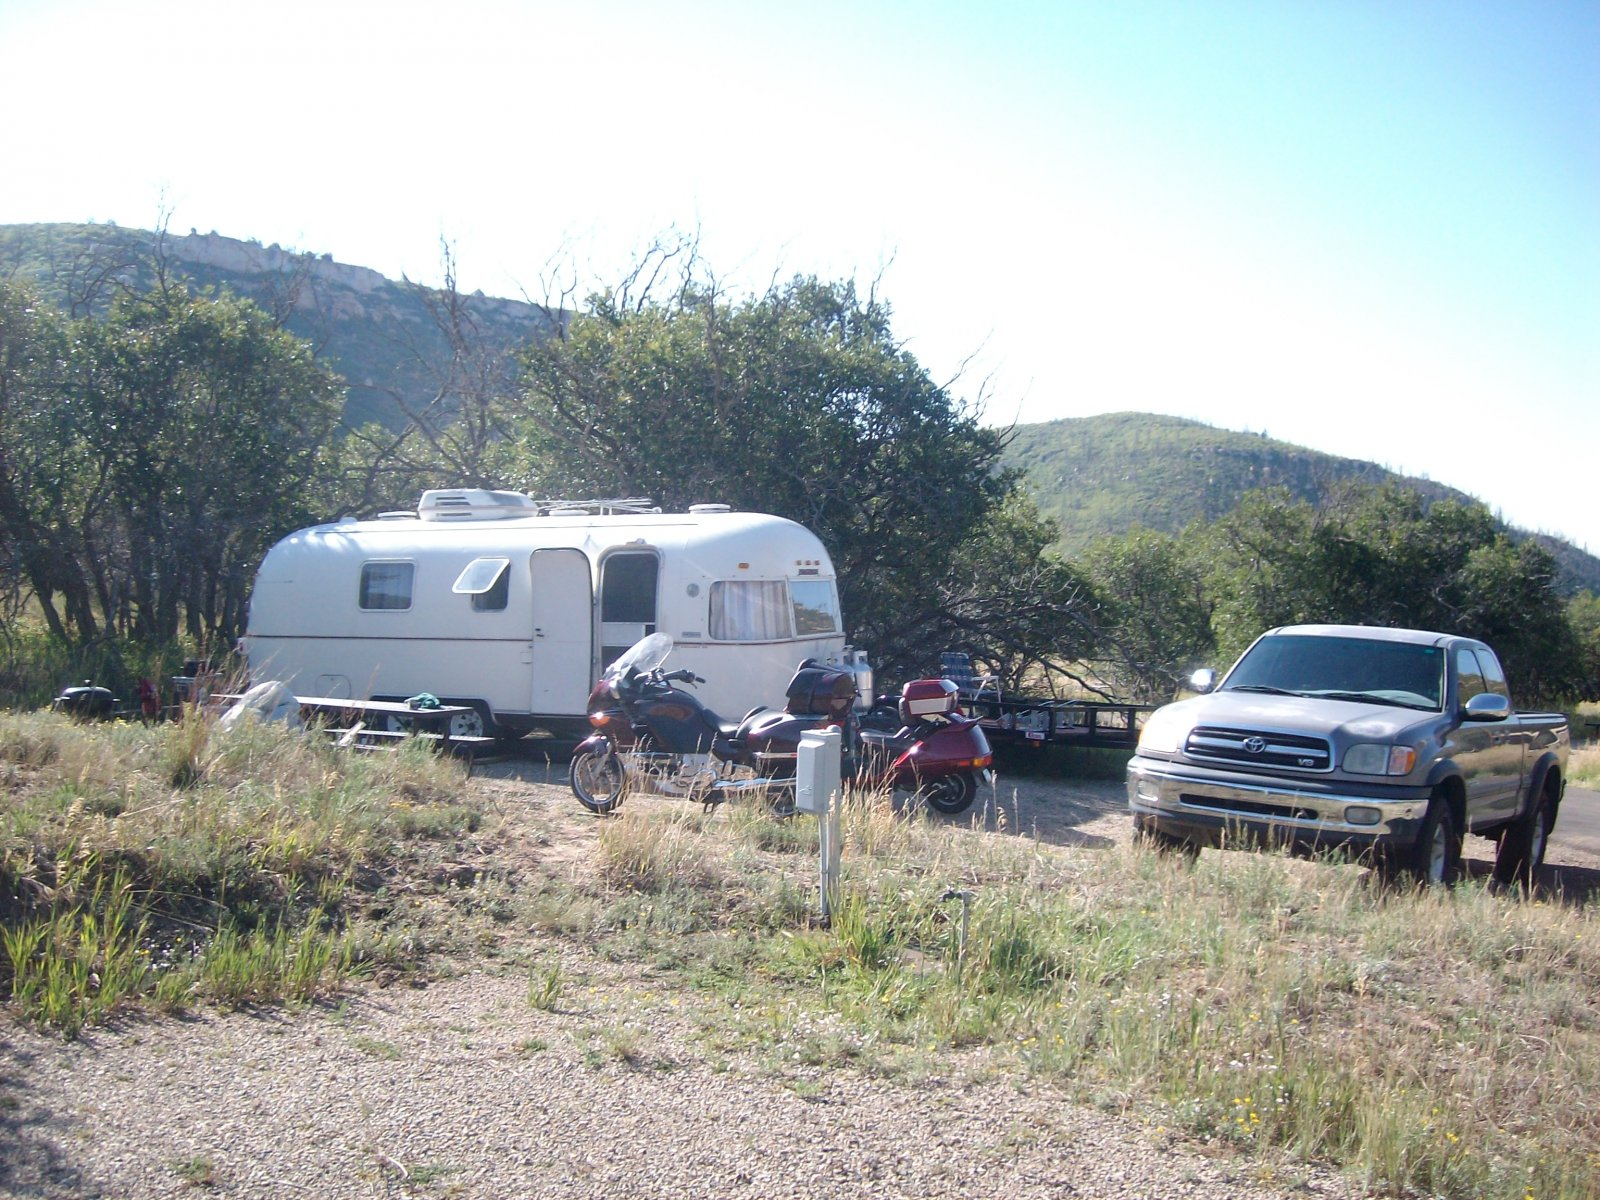 Click image for larger version  Name:6Campsite2.jpg Views:78 Size:440.0 KB ID:168180